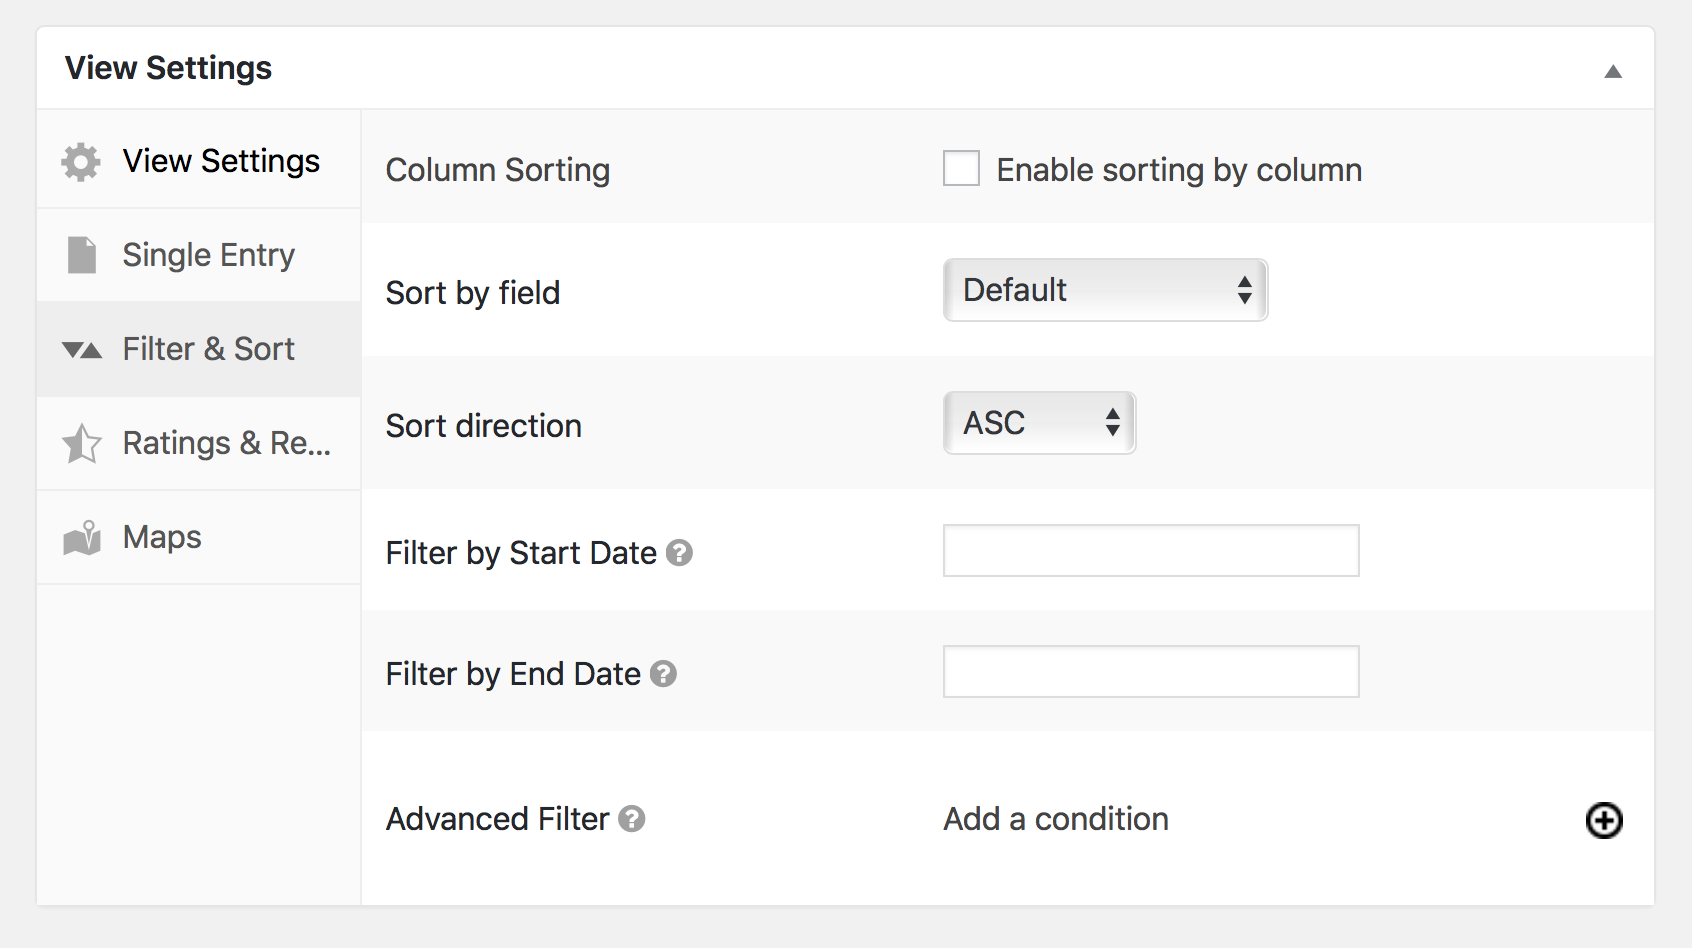 Filter and Sort settings in GravityView show a list of settings that will modify how sorting behaves